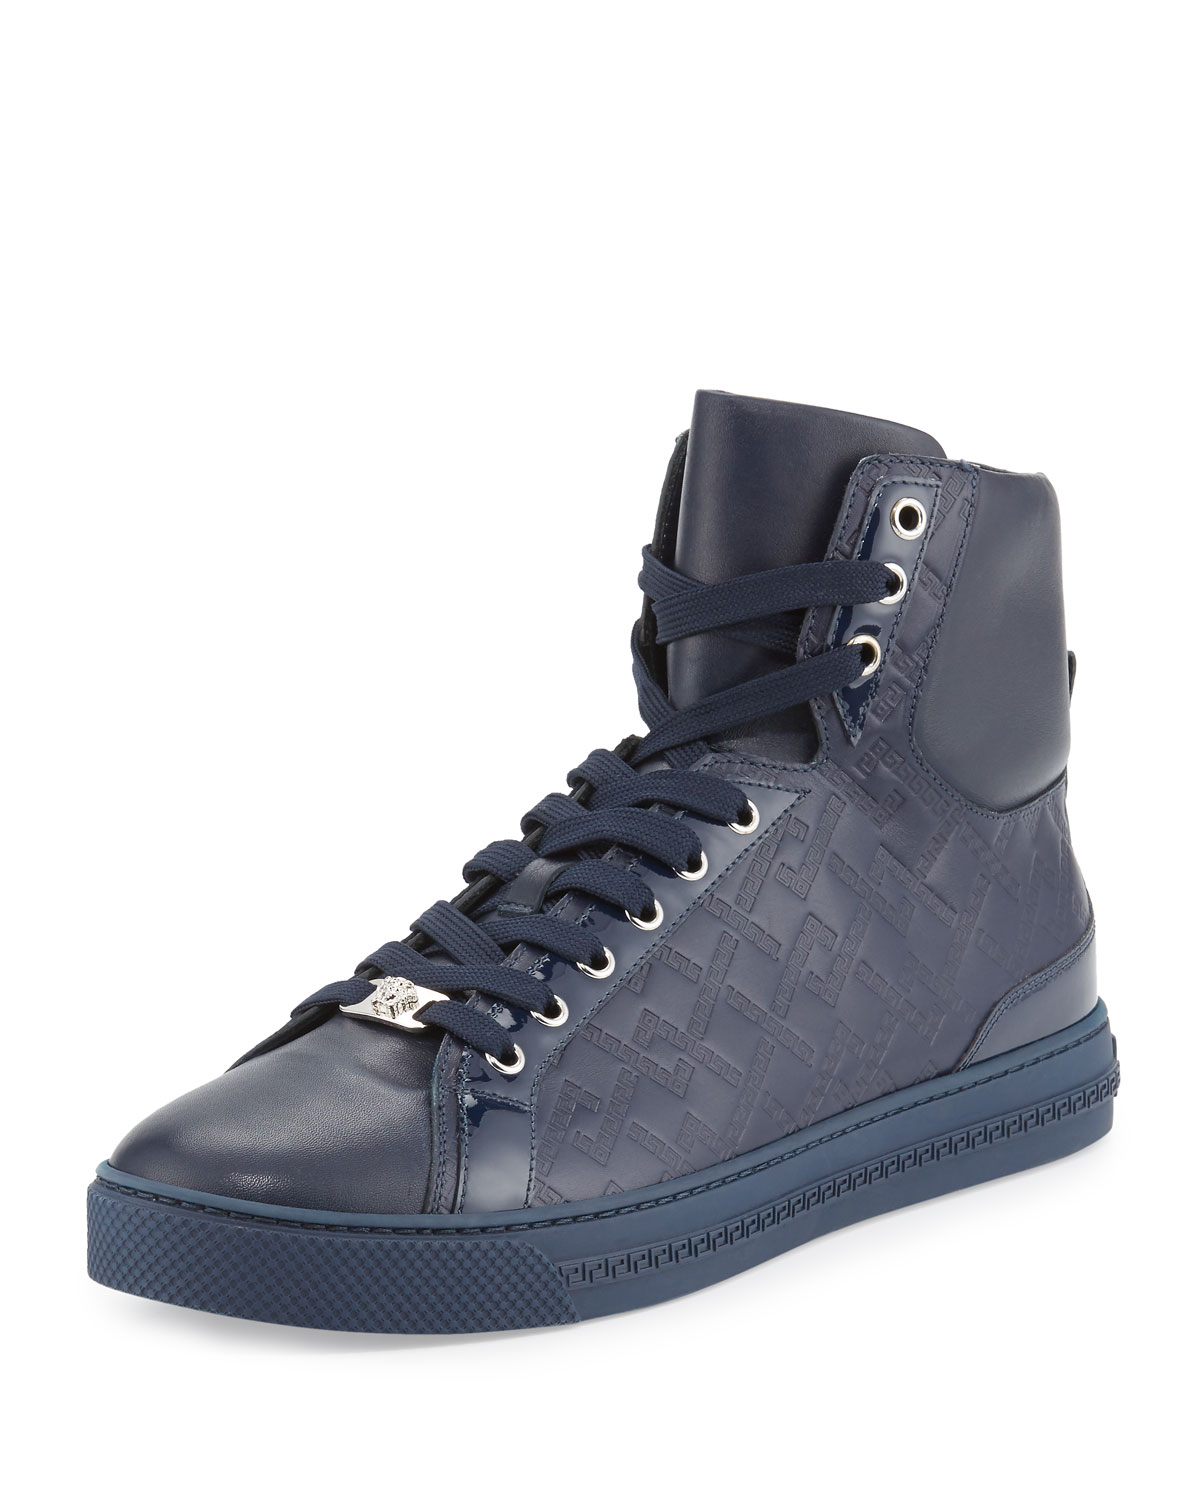 Grecca embossed sneakers - Black Versace